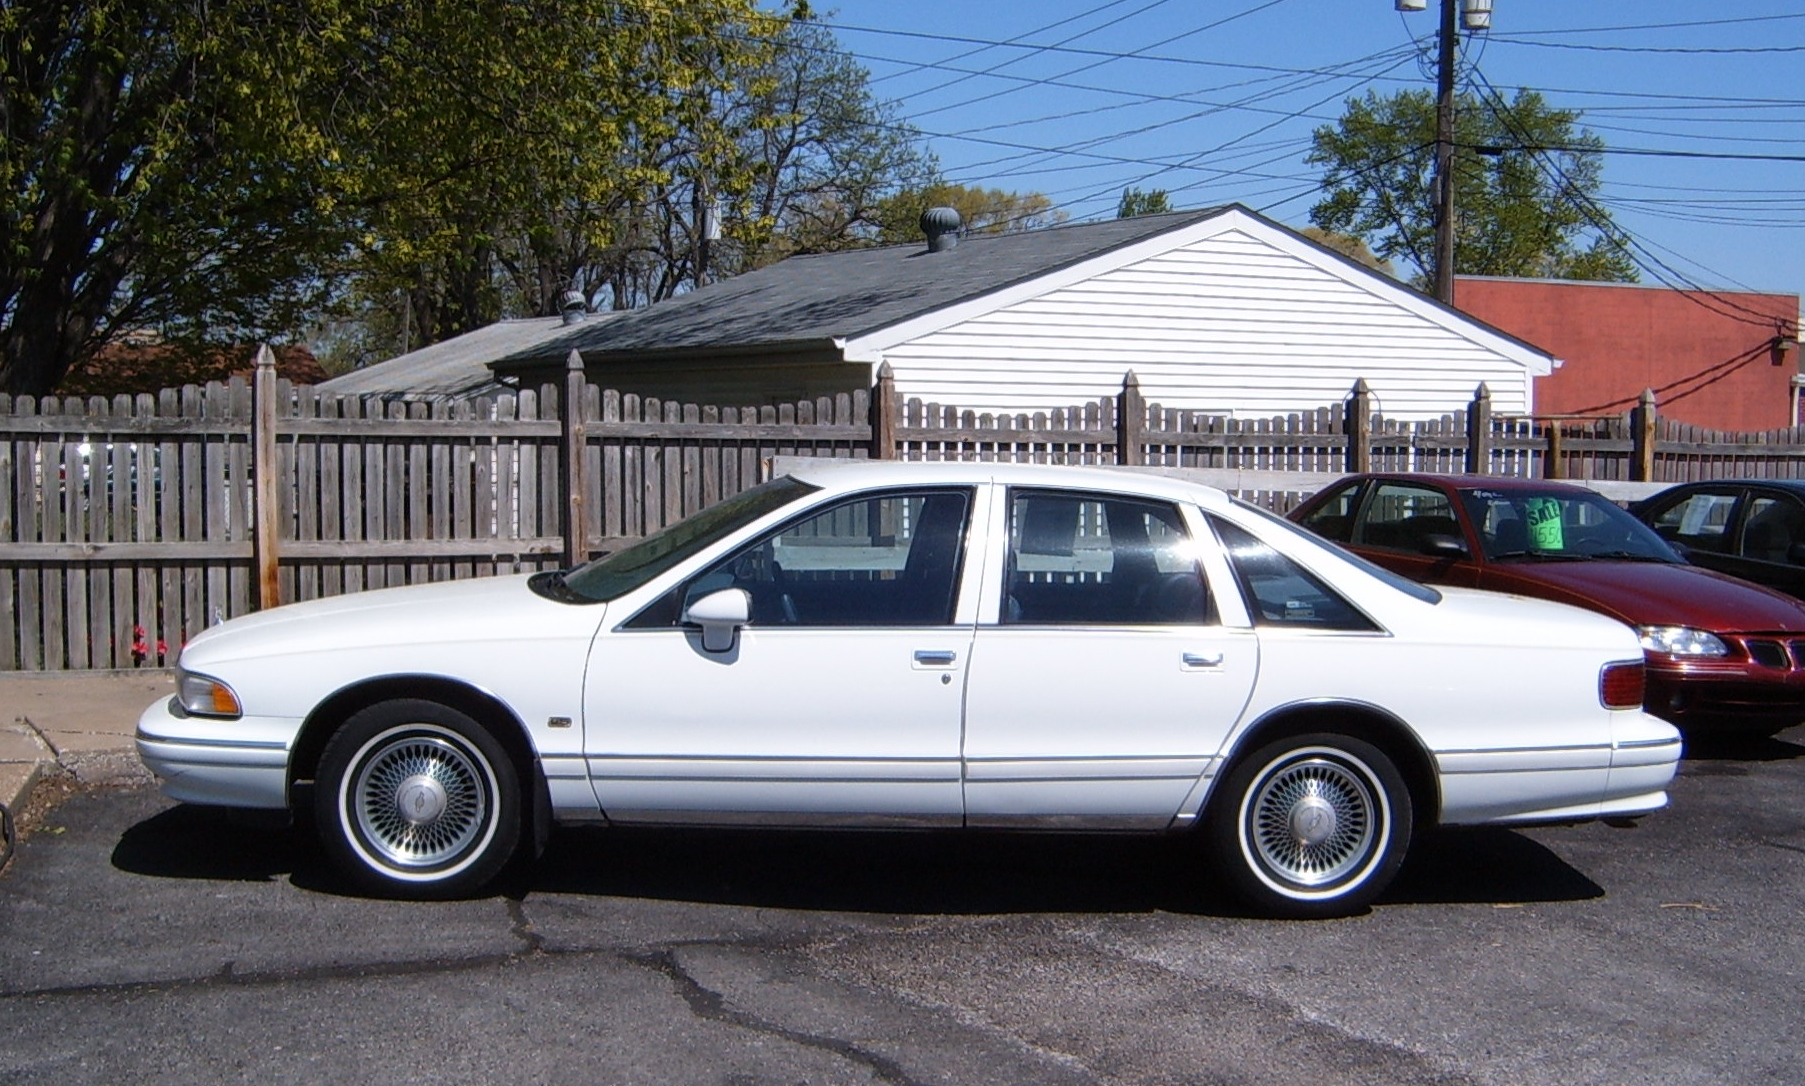 Due to the polarizing styling chevrolet wasted no time in modifying the sheetmetal for 1993 the caprice lost its rear wheel spats changing the whole look